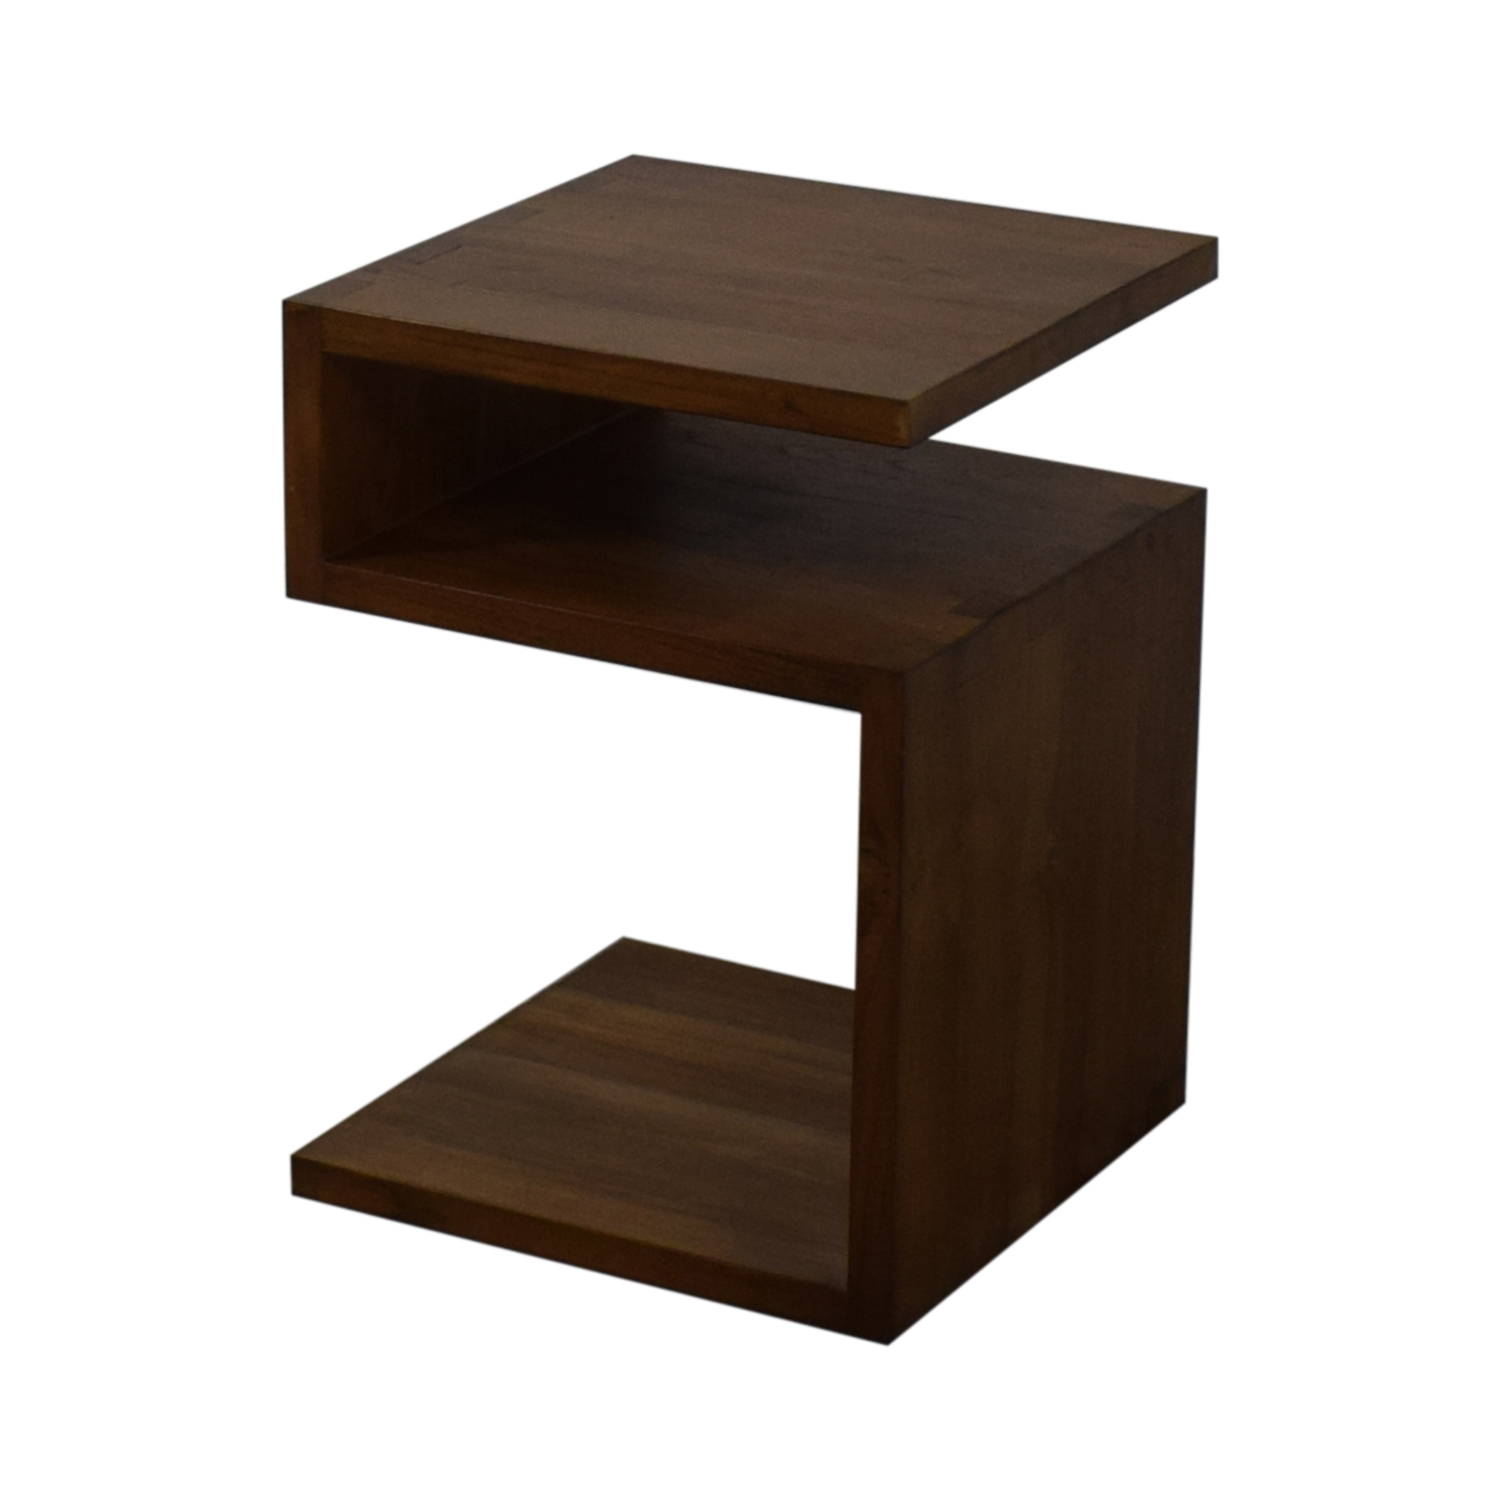 Crate & Barrel Crate & Barrel Entu Side Table discount